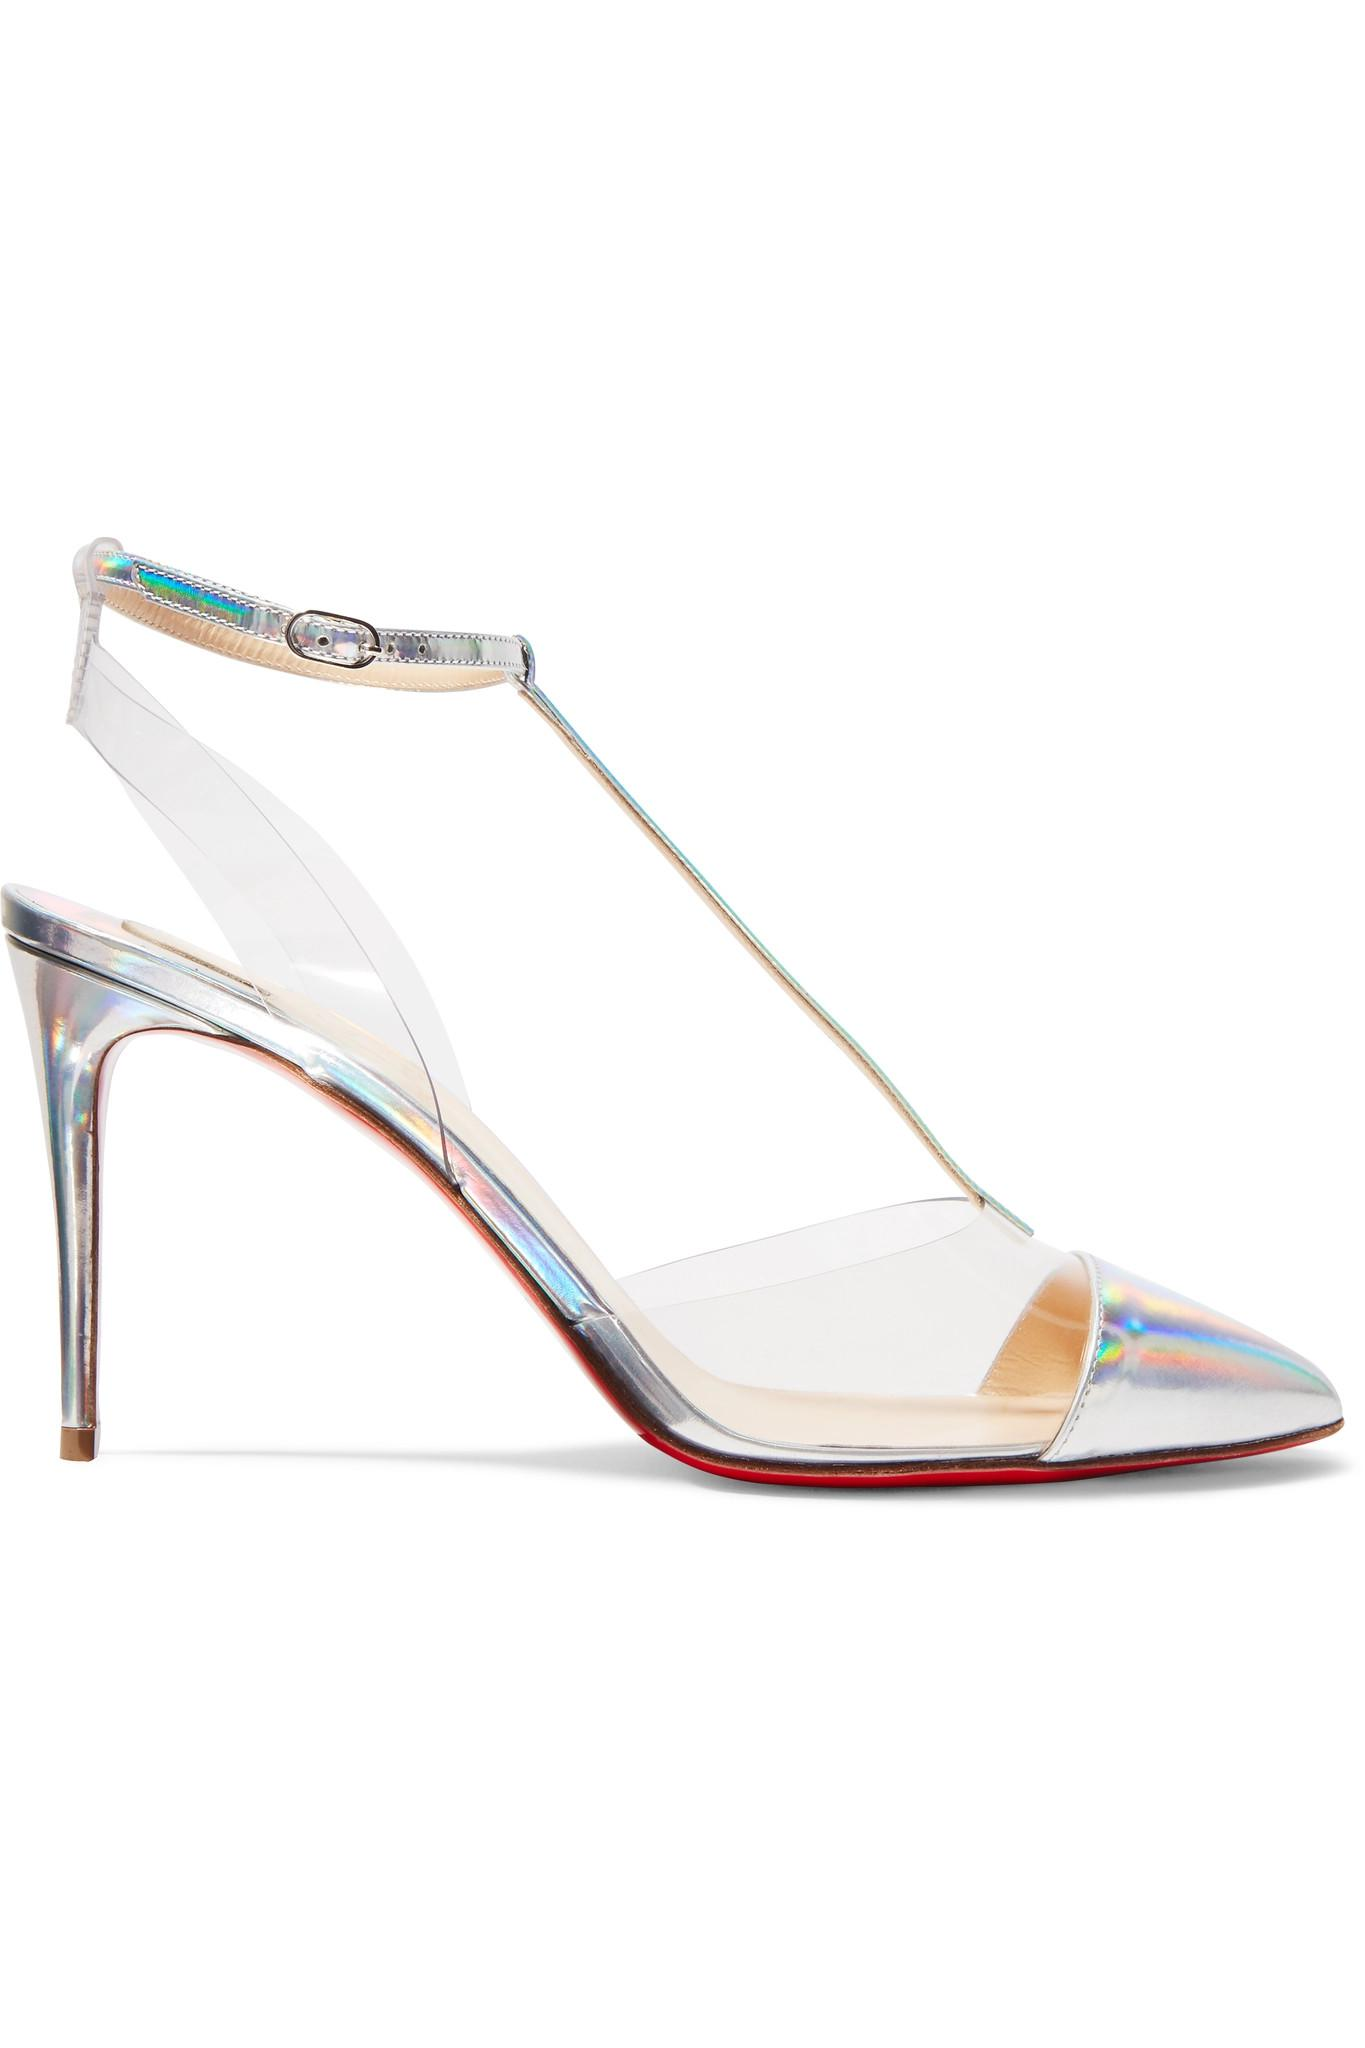 c08f427eec1a Christian Louboutin. Women s Metallic Nosy 85 Patent-leather And Pvc Pumps